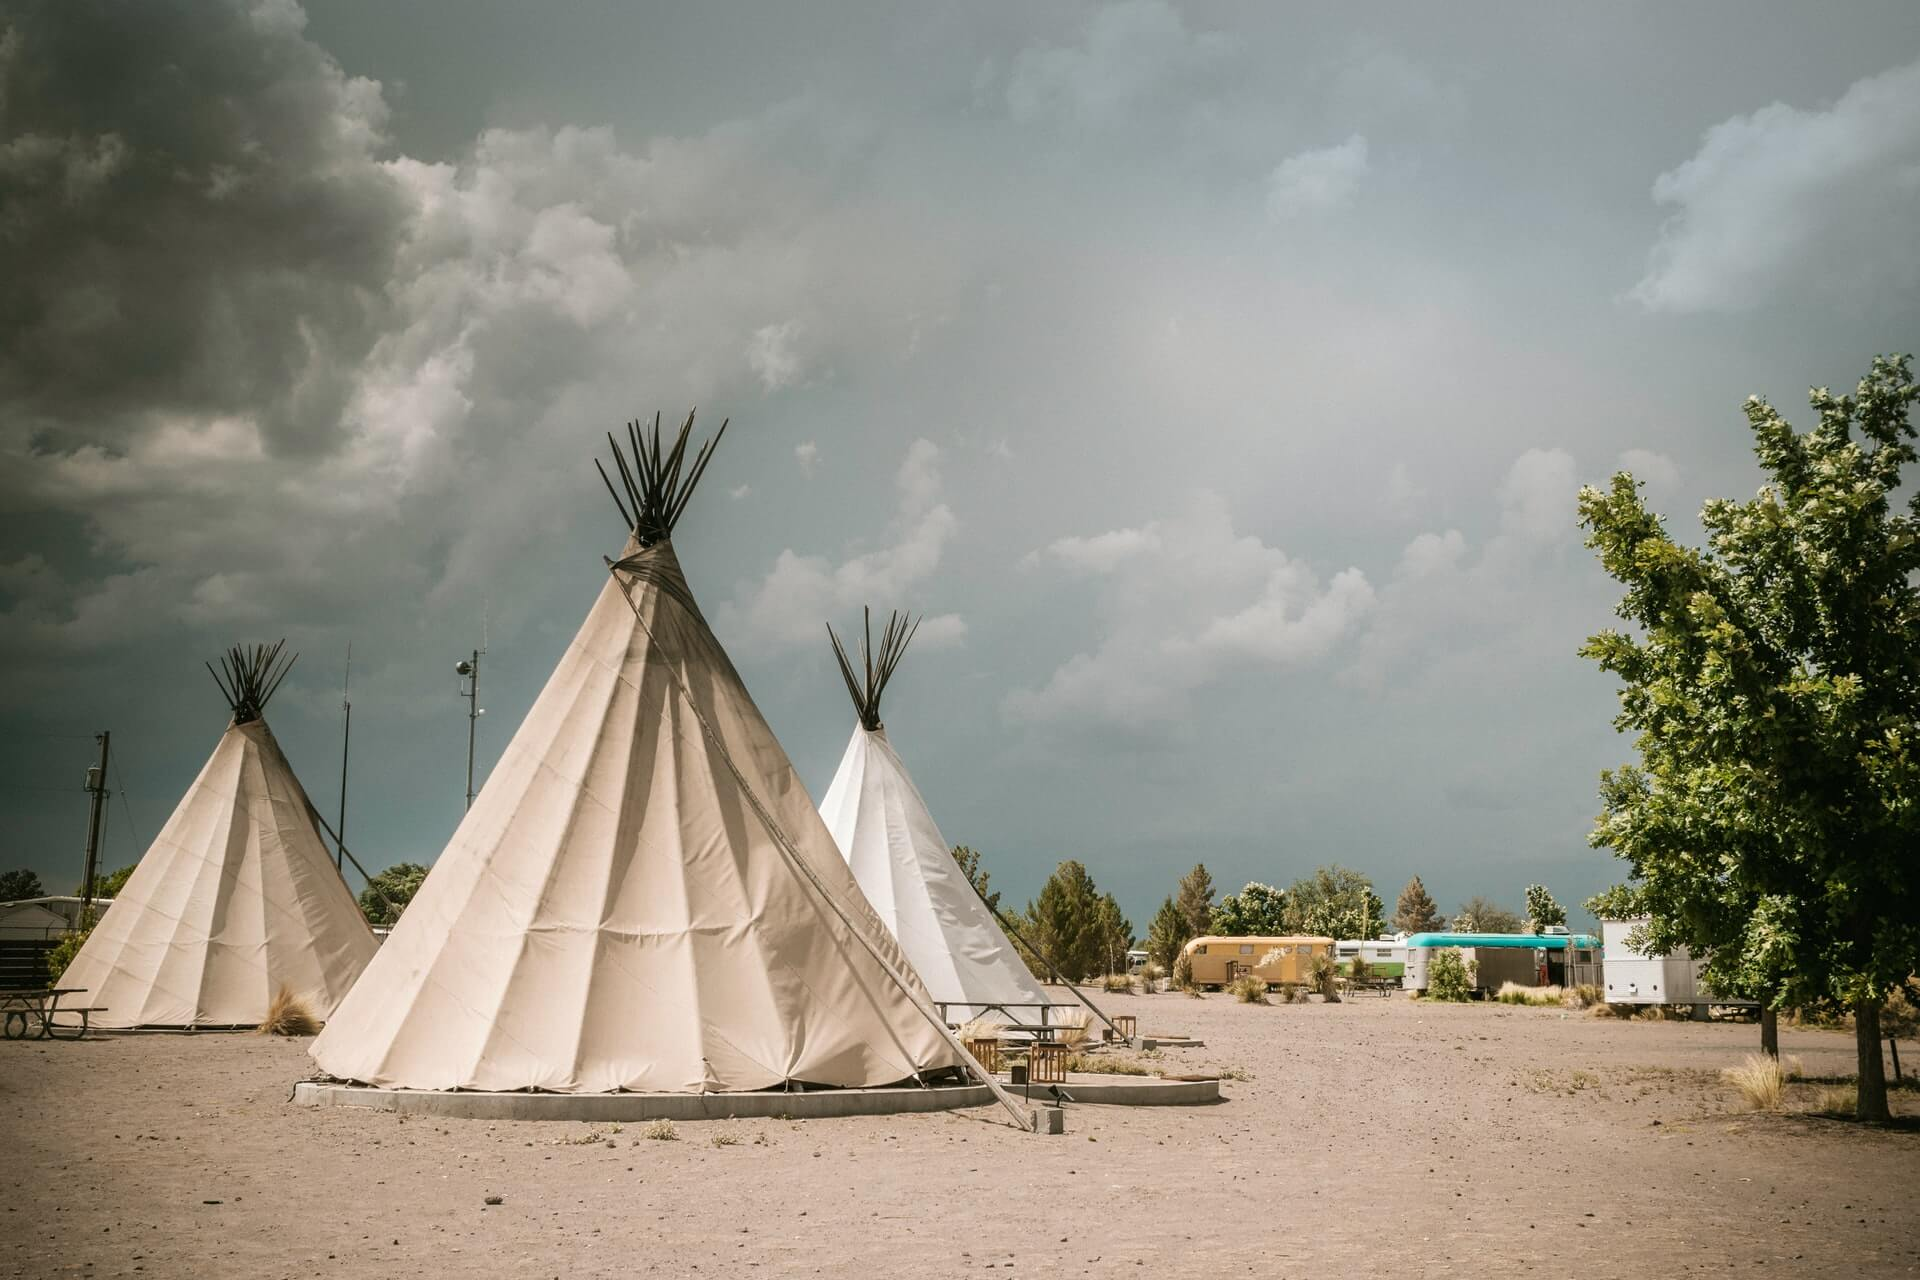 Three teepees in the desert